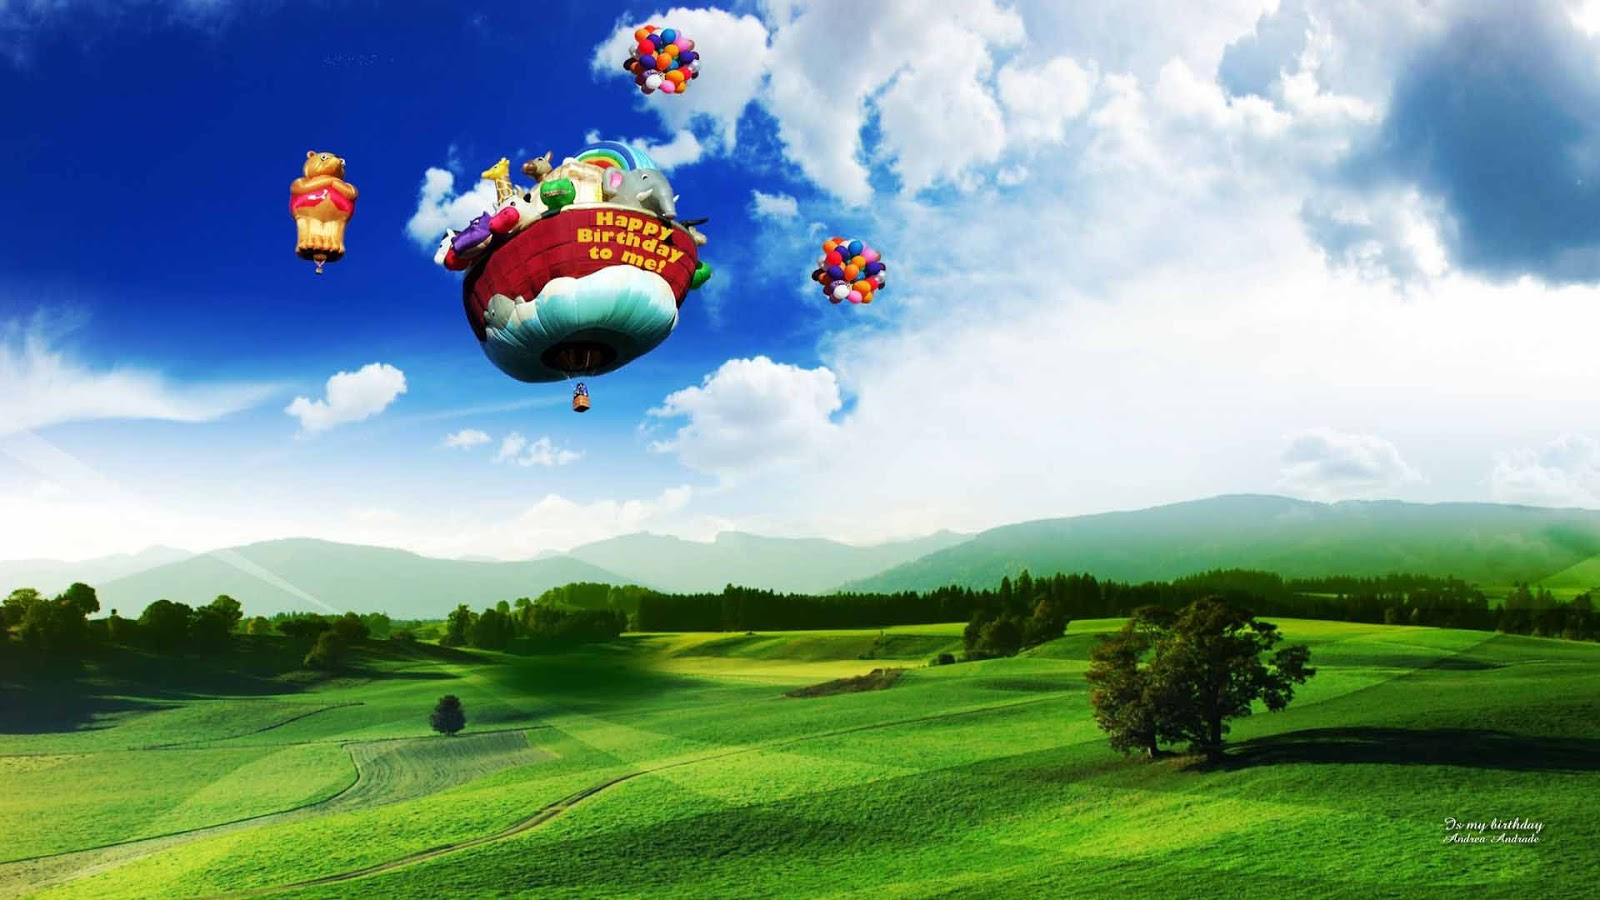 Hd 3d Wallpapers: HD Wallpapers: 3D Nature Wallpapers